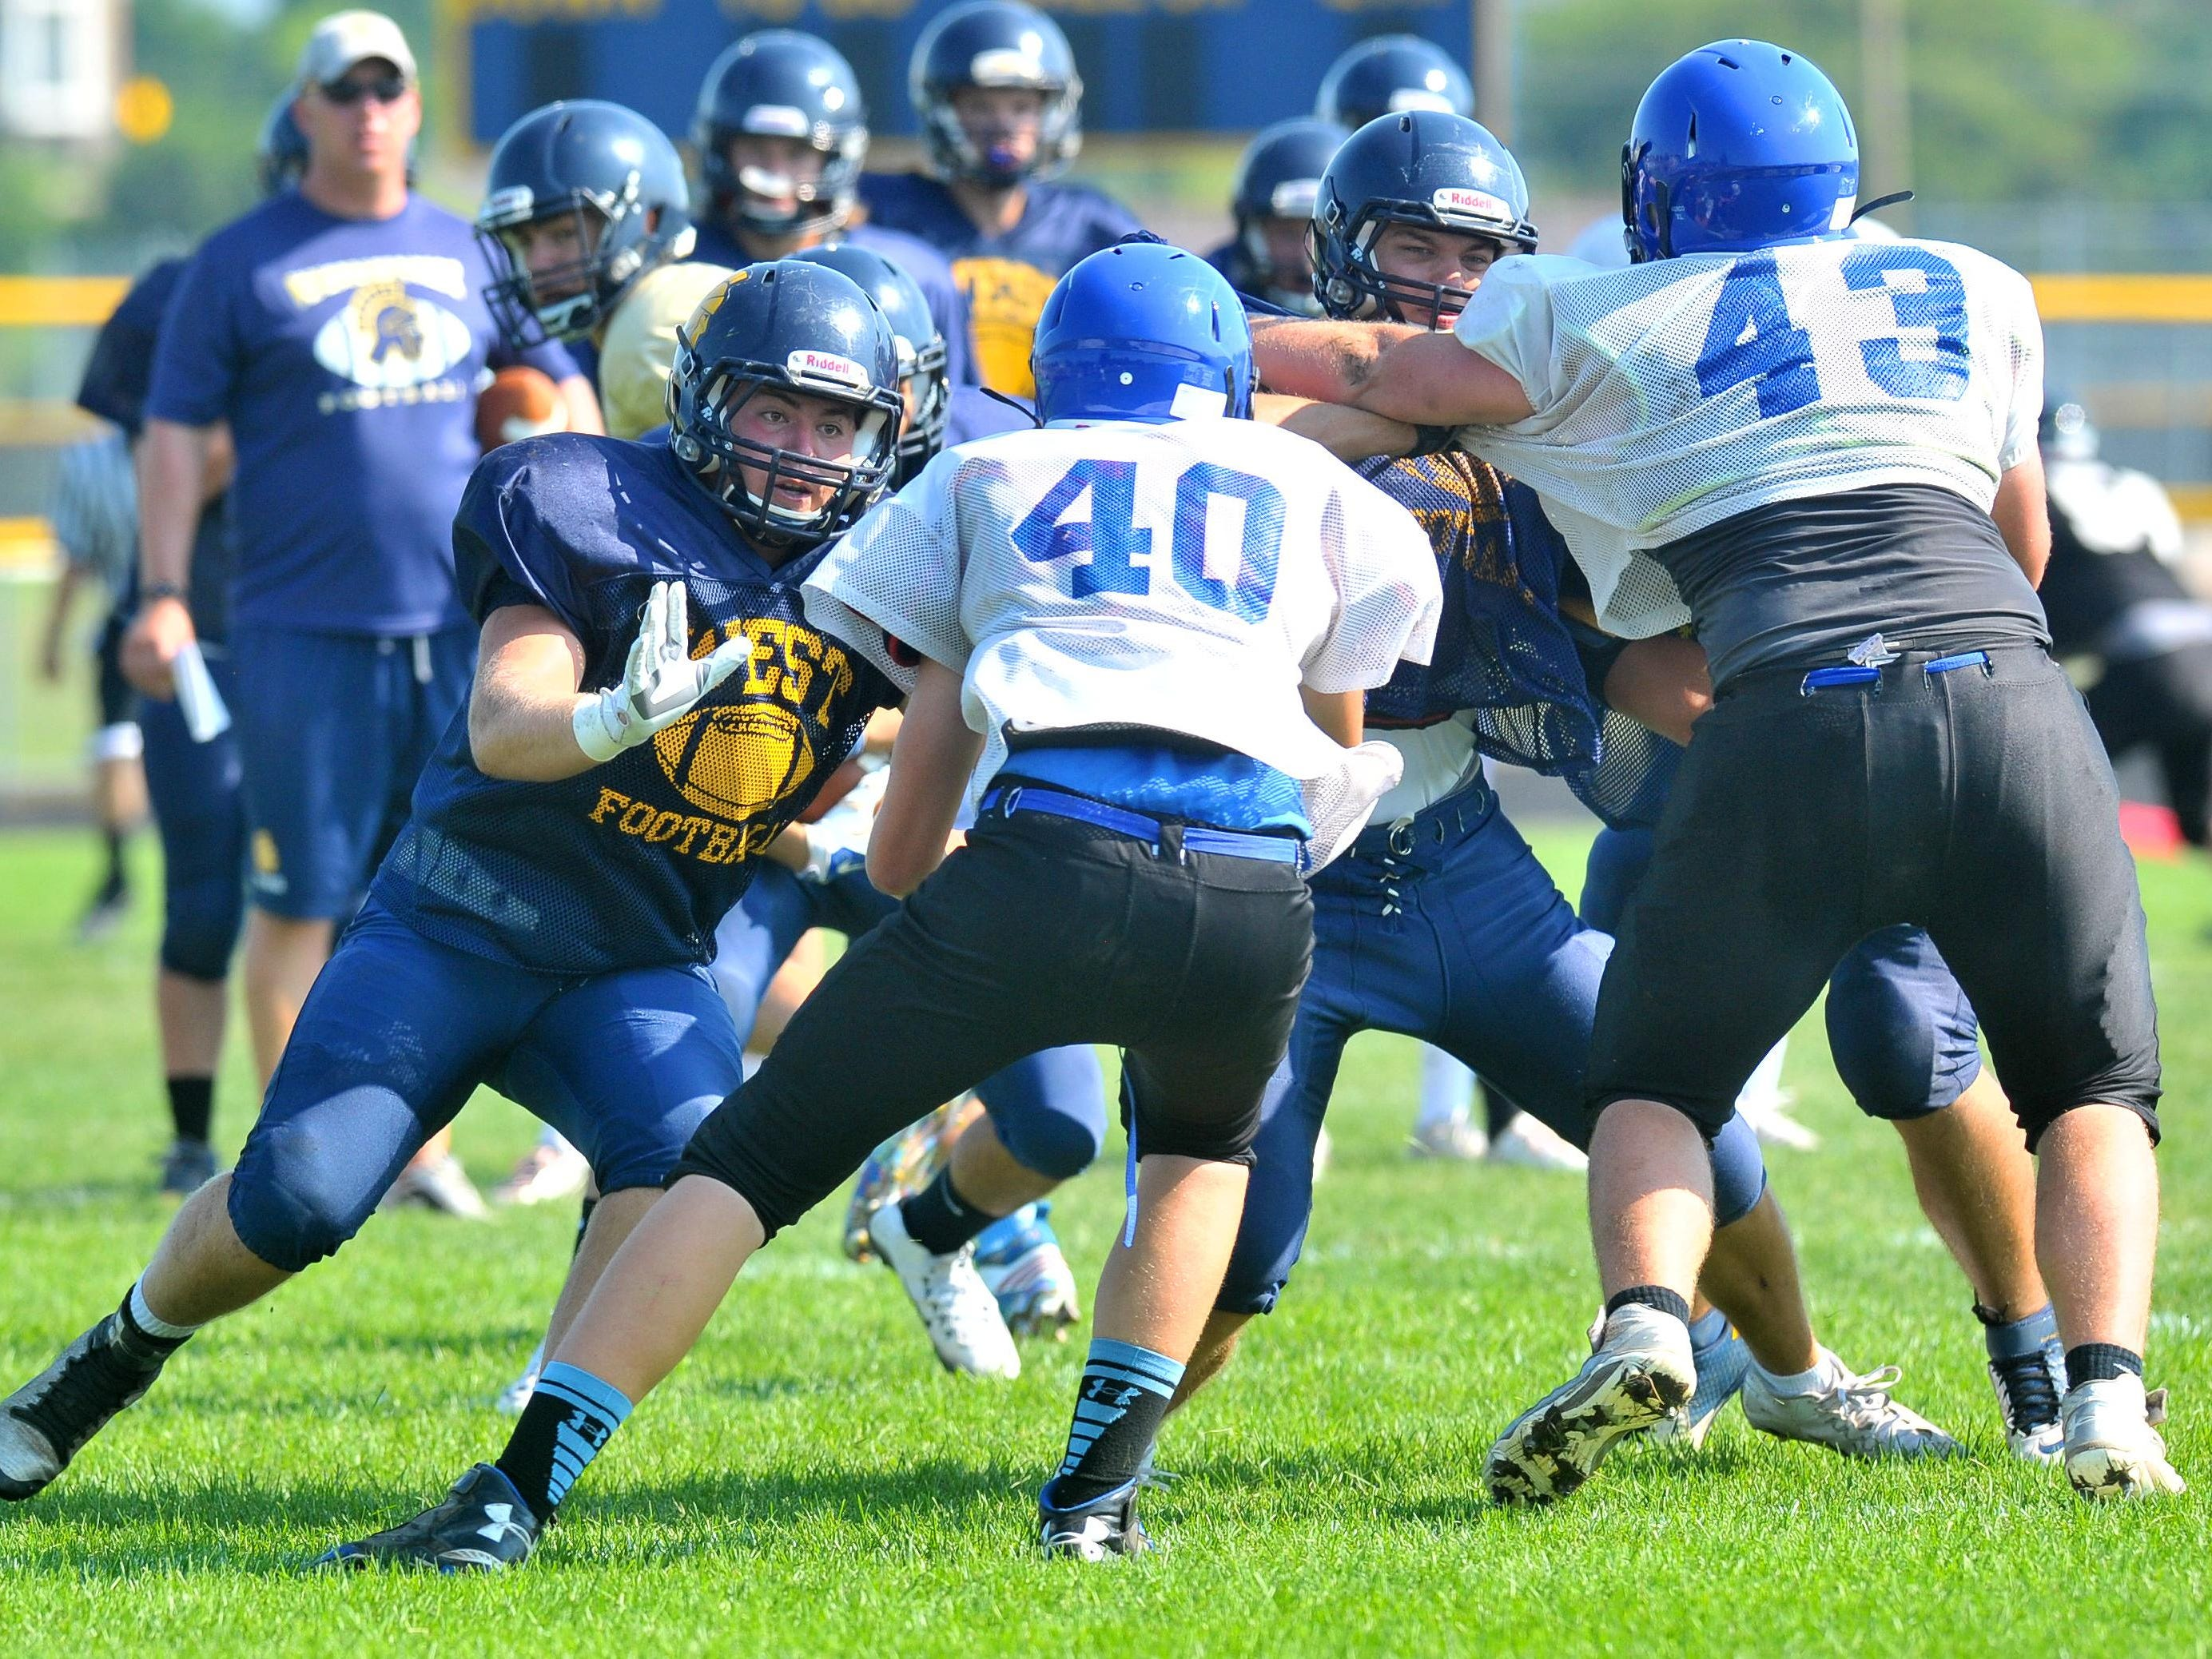 West vs. Merrill on scrimmage Friday afternoon at Wausau West High School football field.